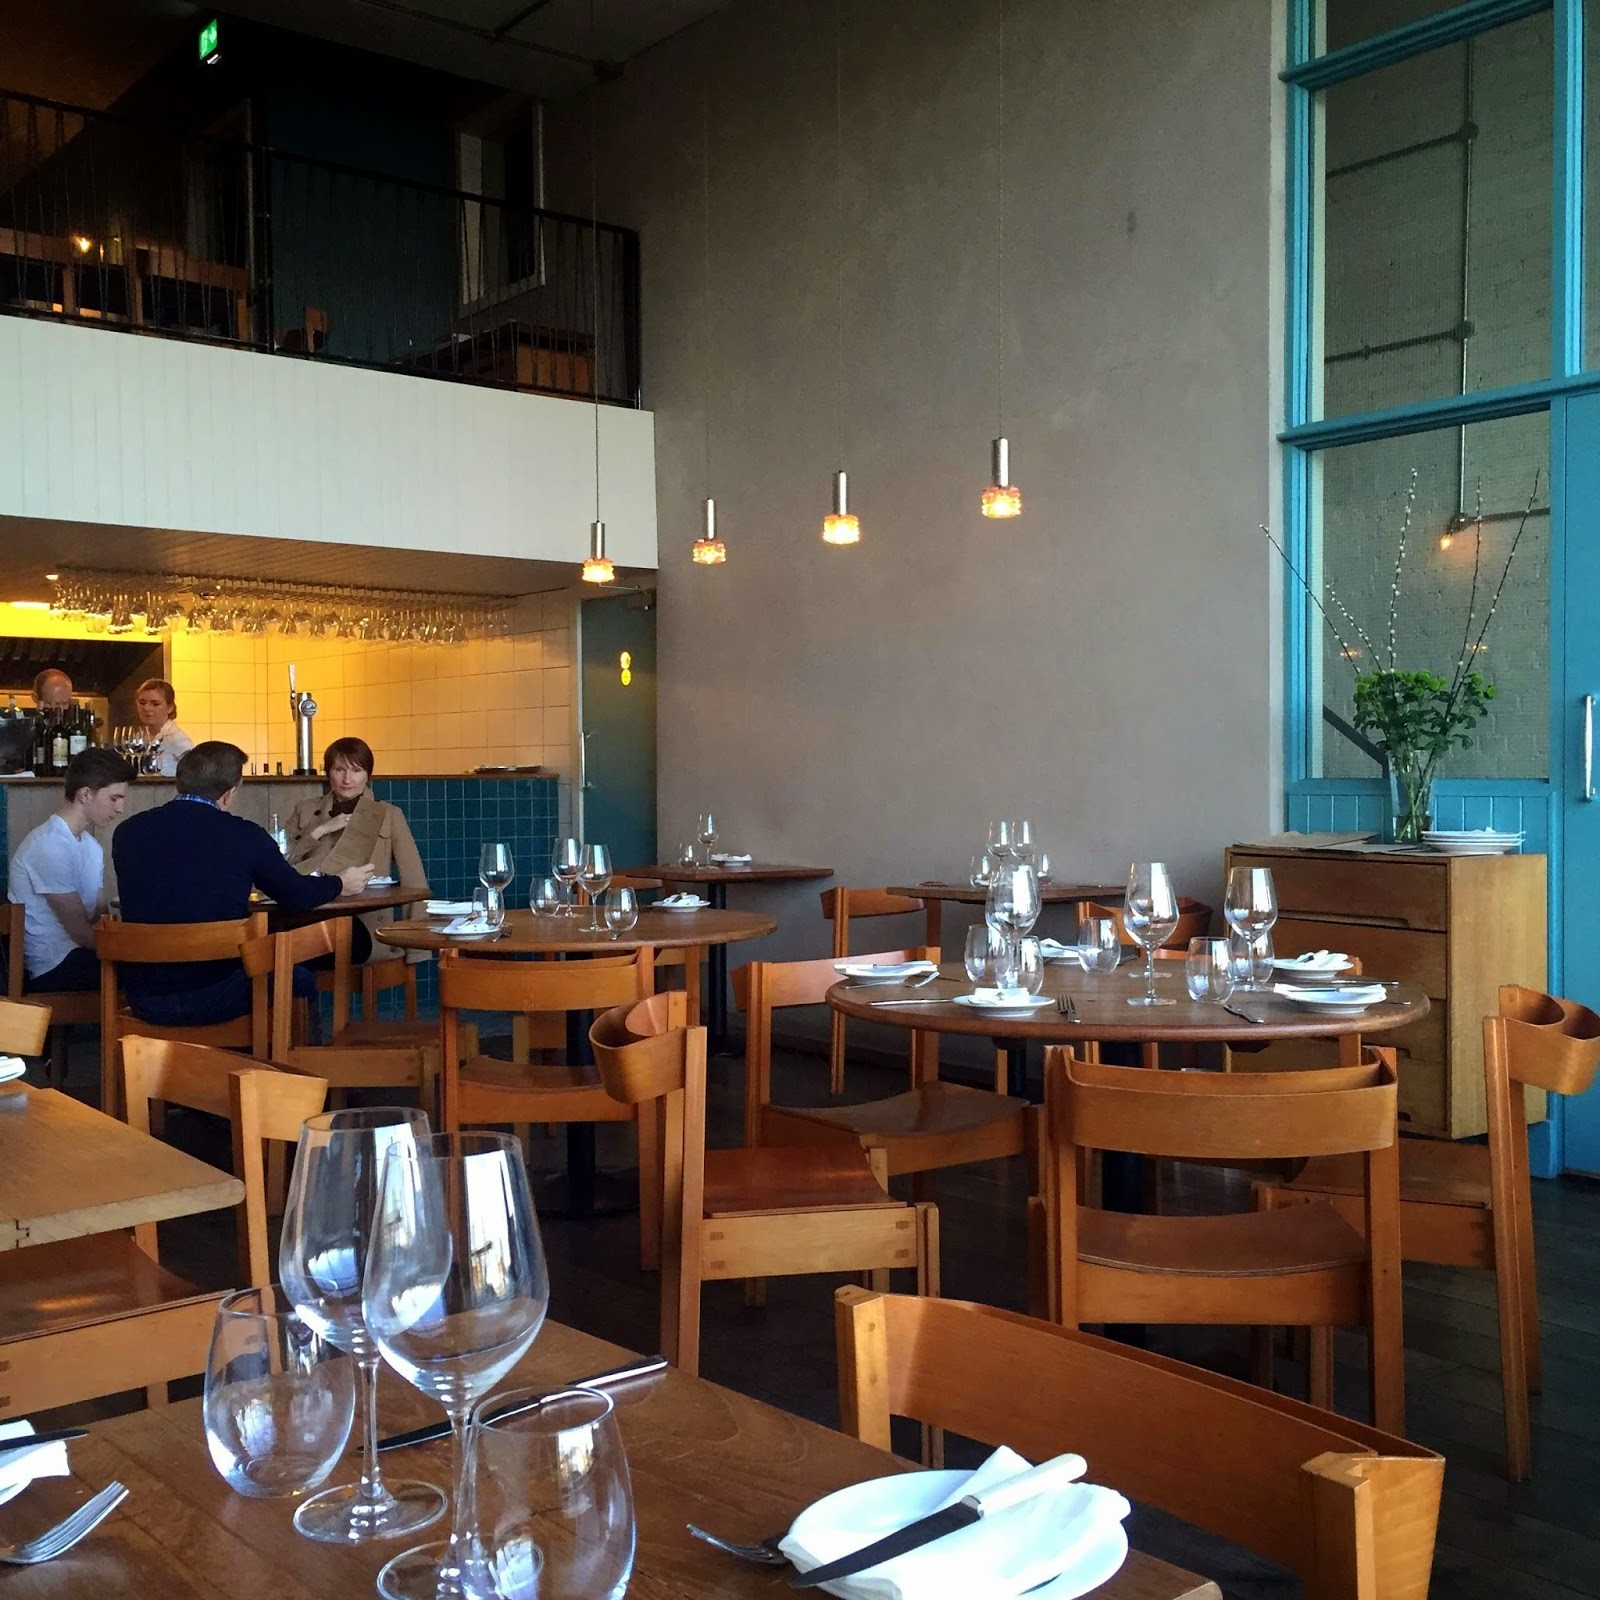 Stephen Street Kitchen Review